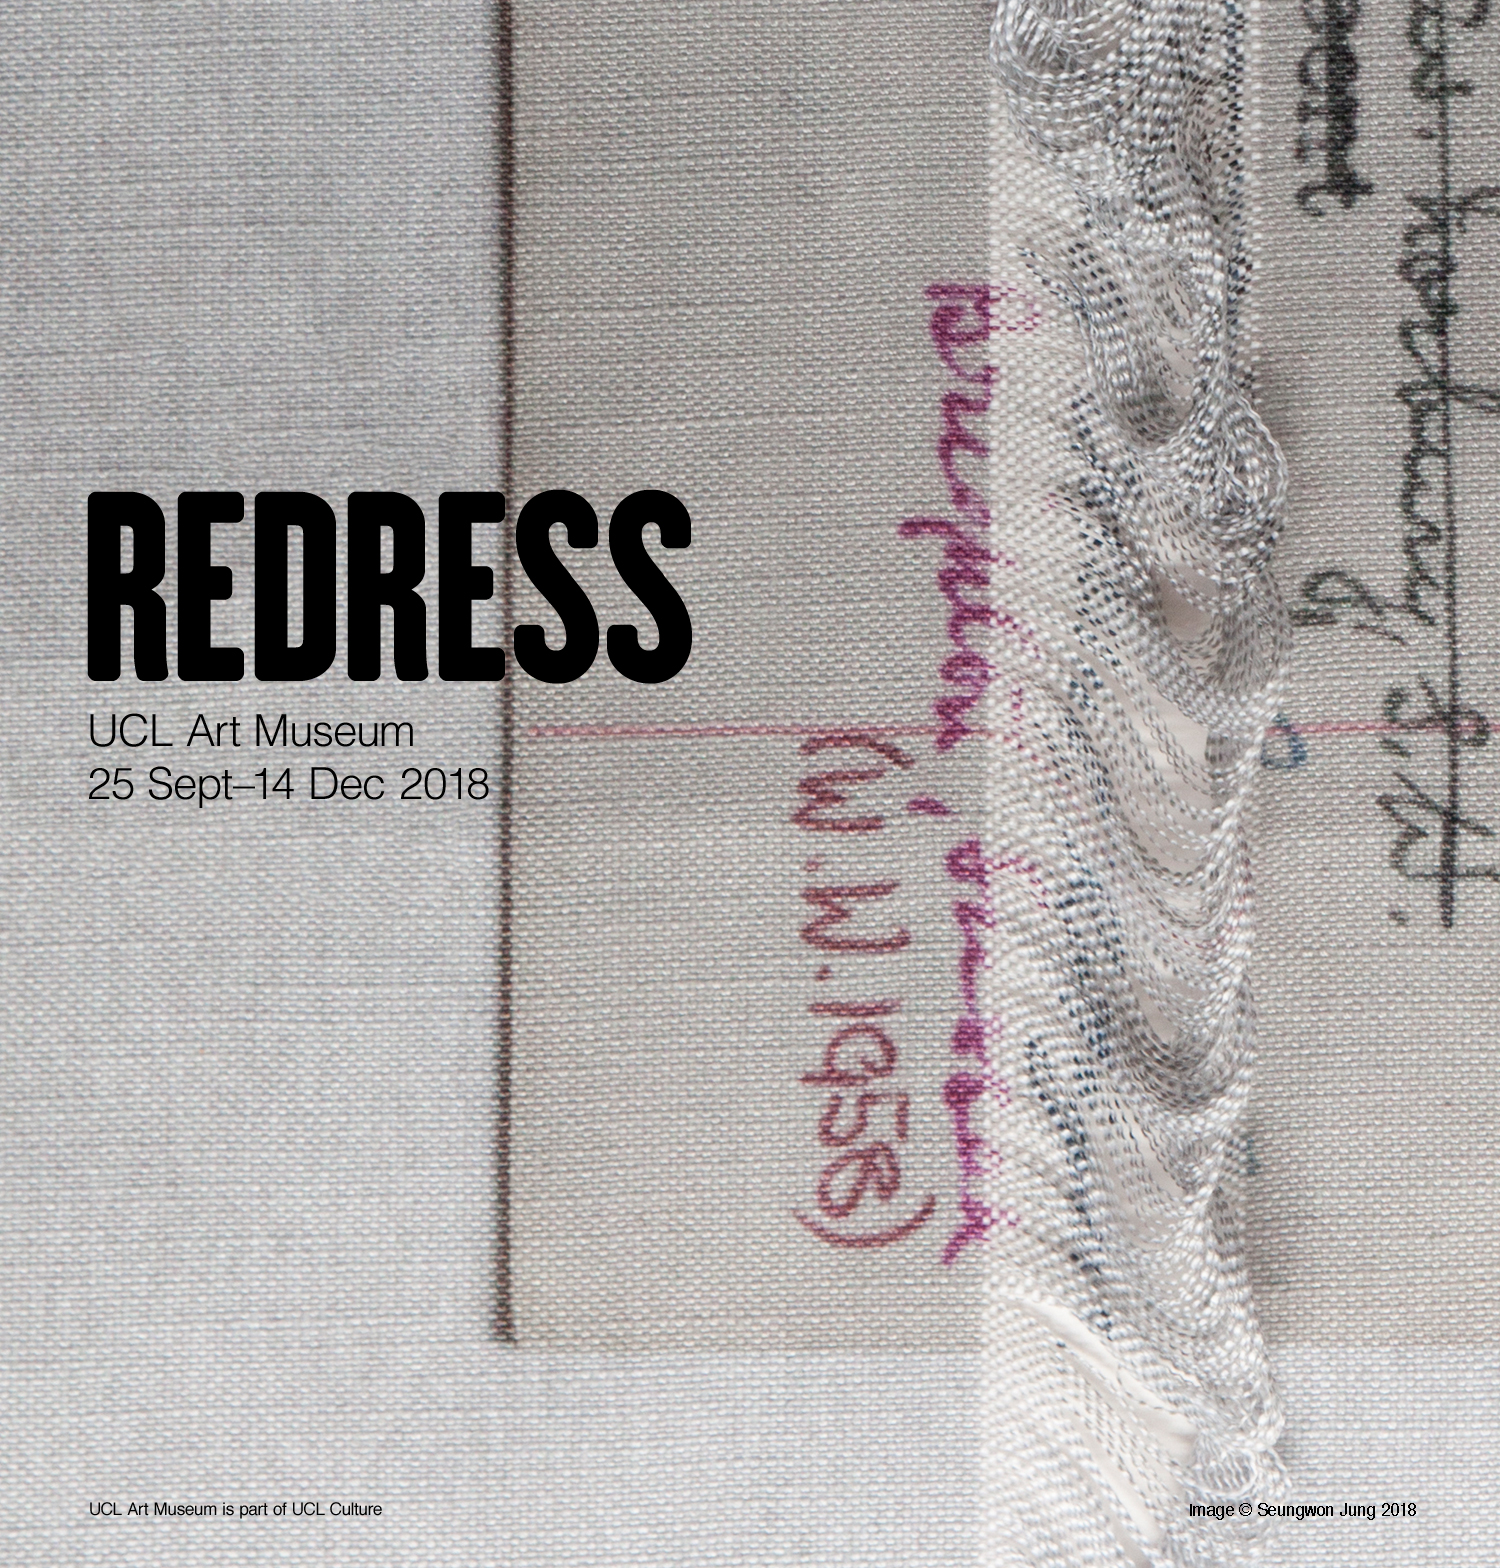 Redress at UCL Art Museum